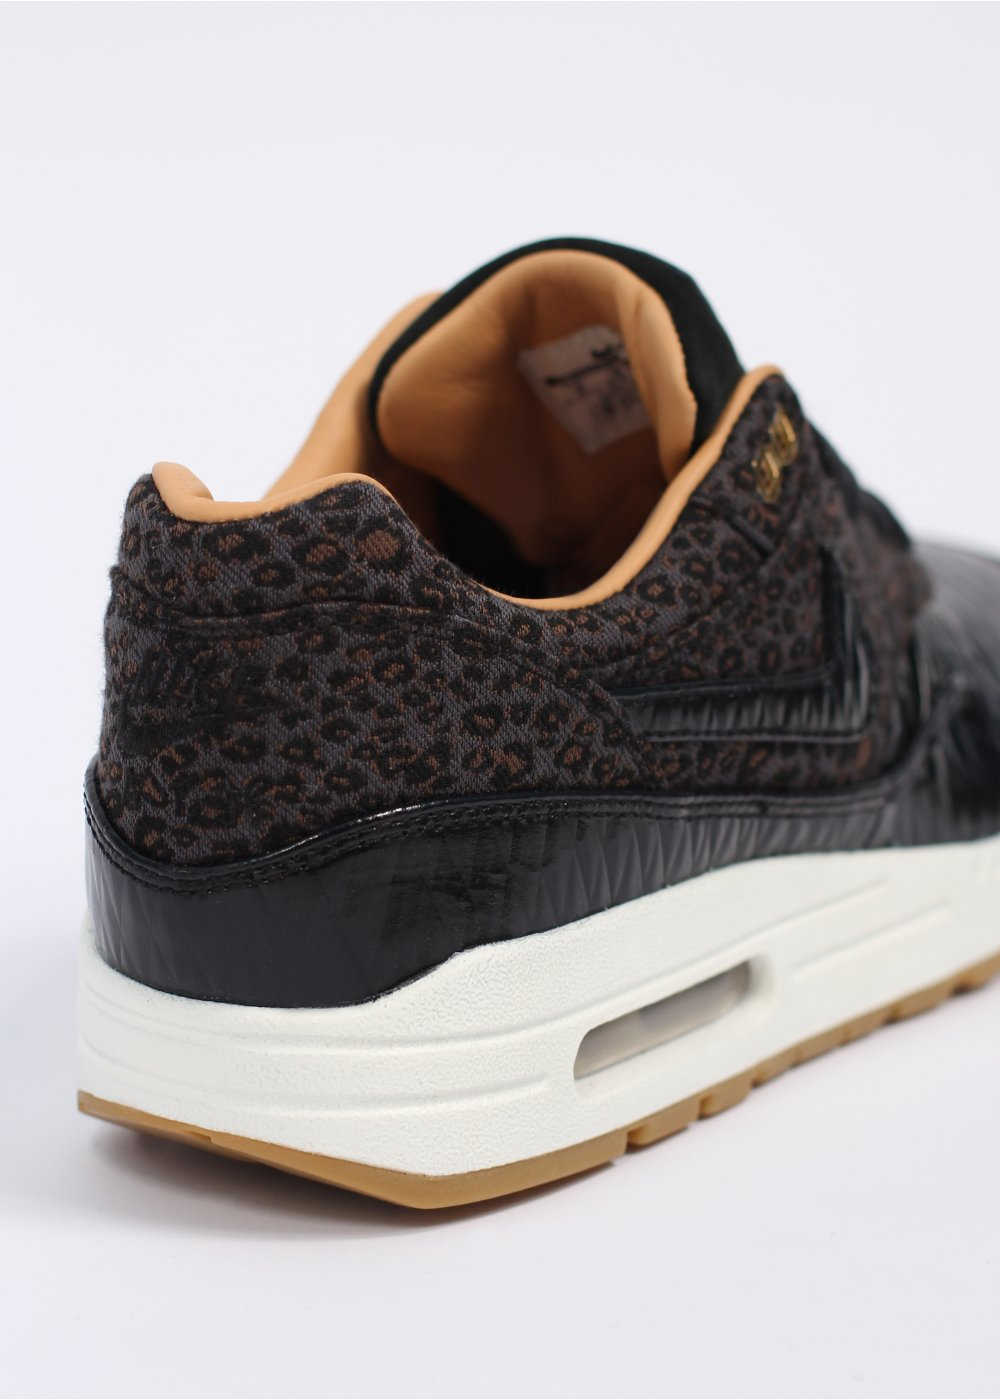 nike air max 1 safari black leopard